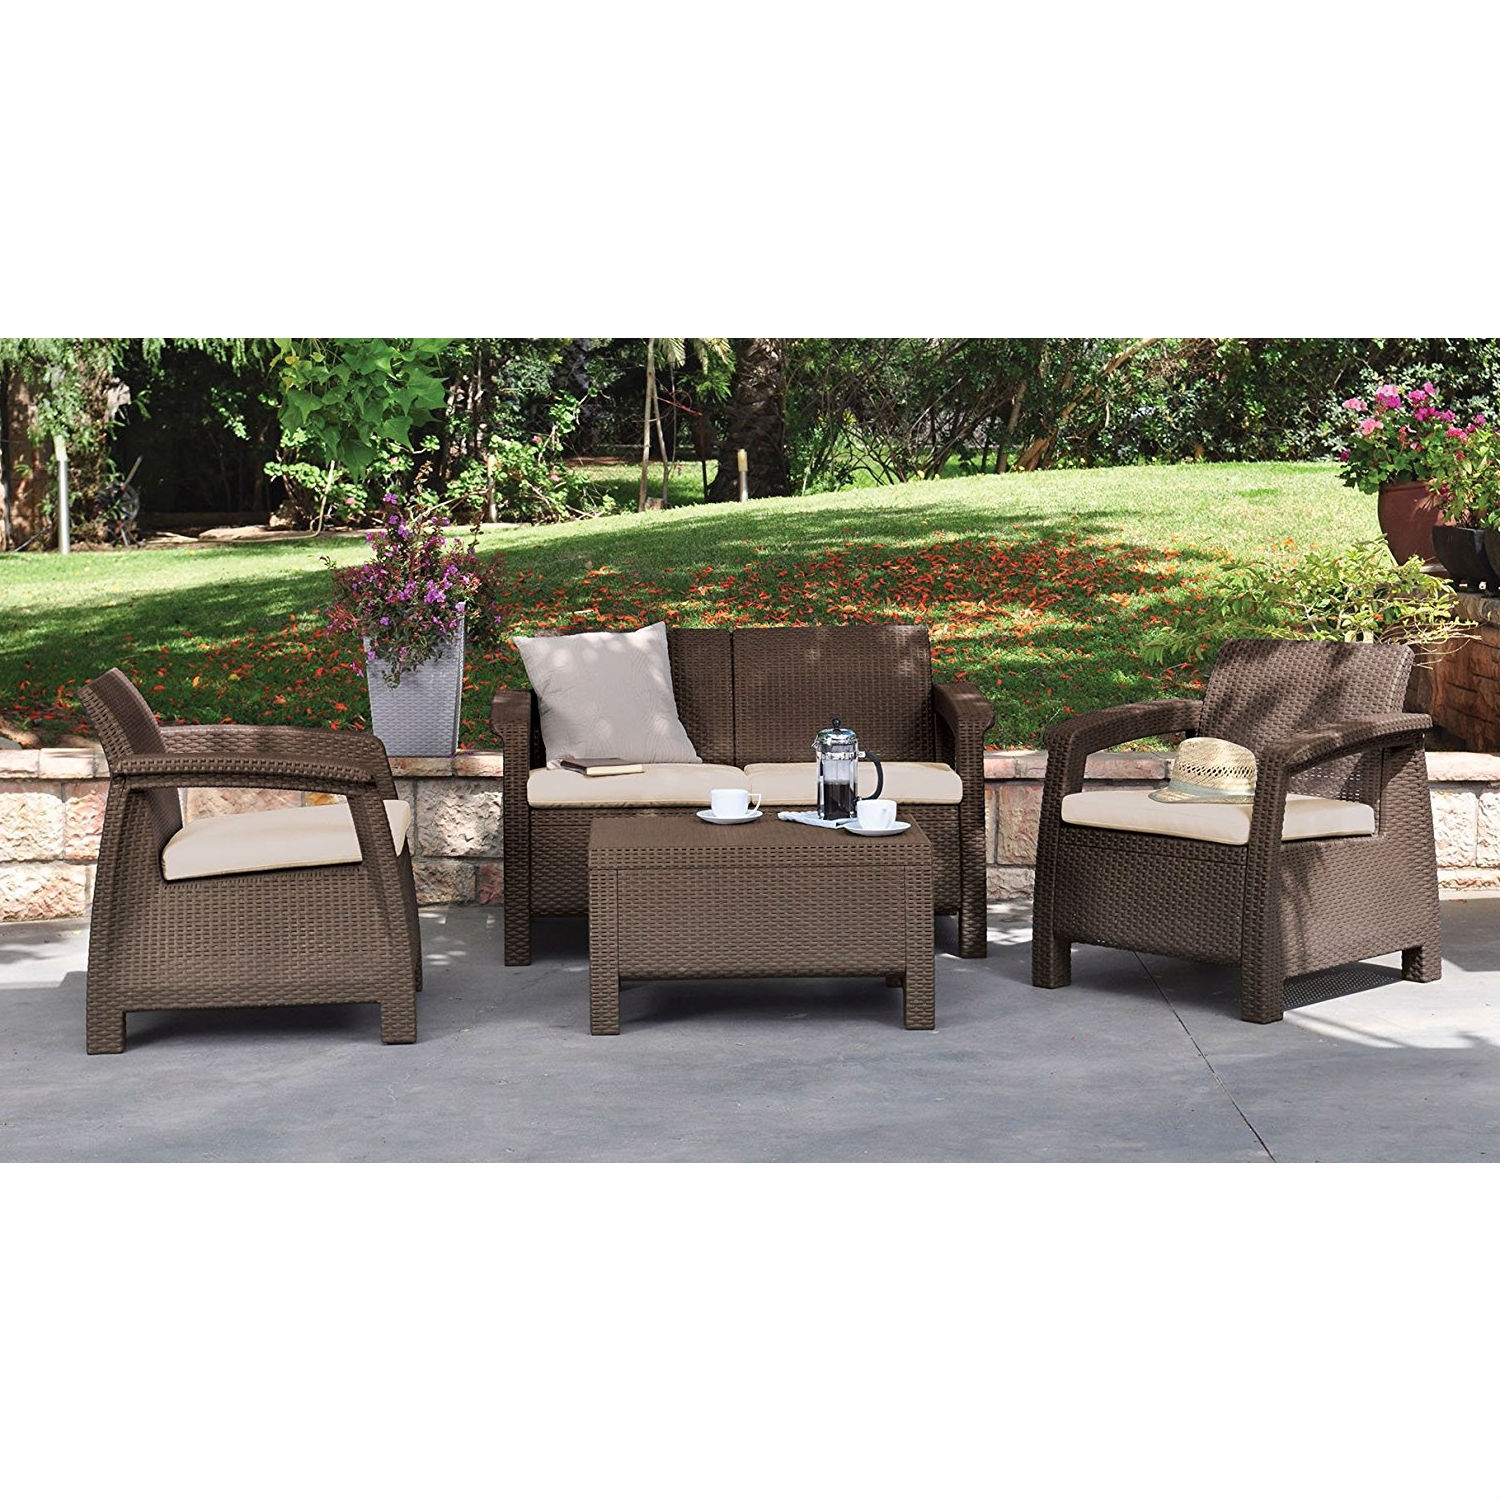 Wicker Patio Chair Brown Resin Wicker Patio Furniture Set With Off White Cushions